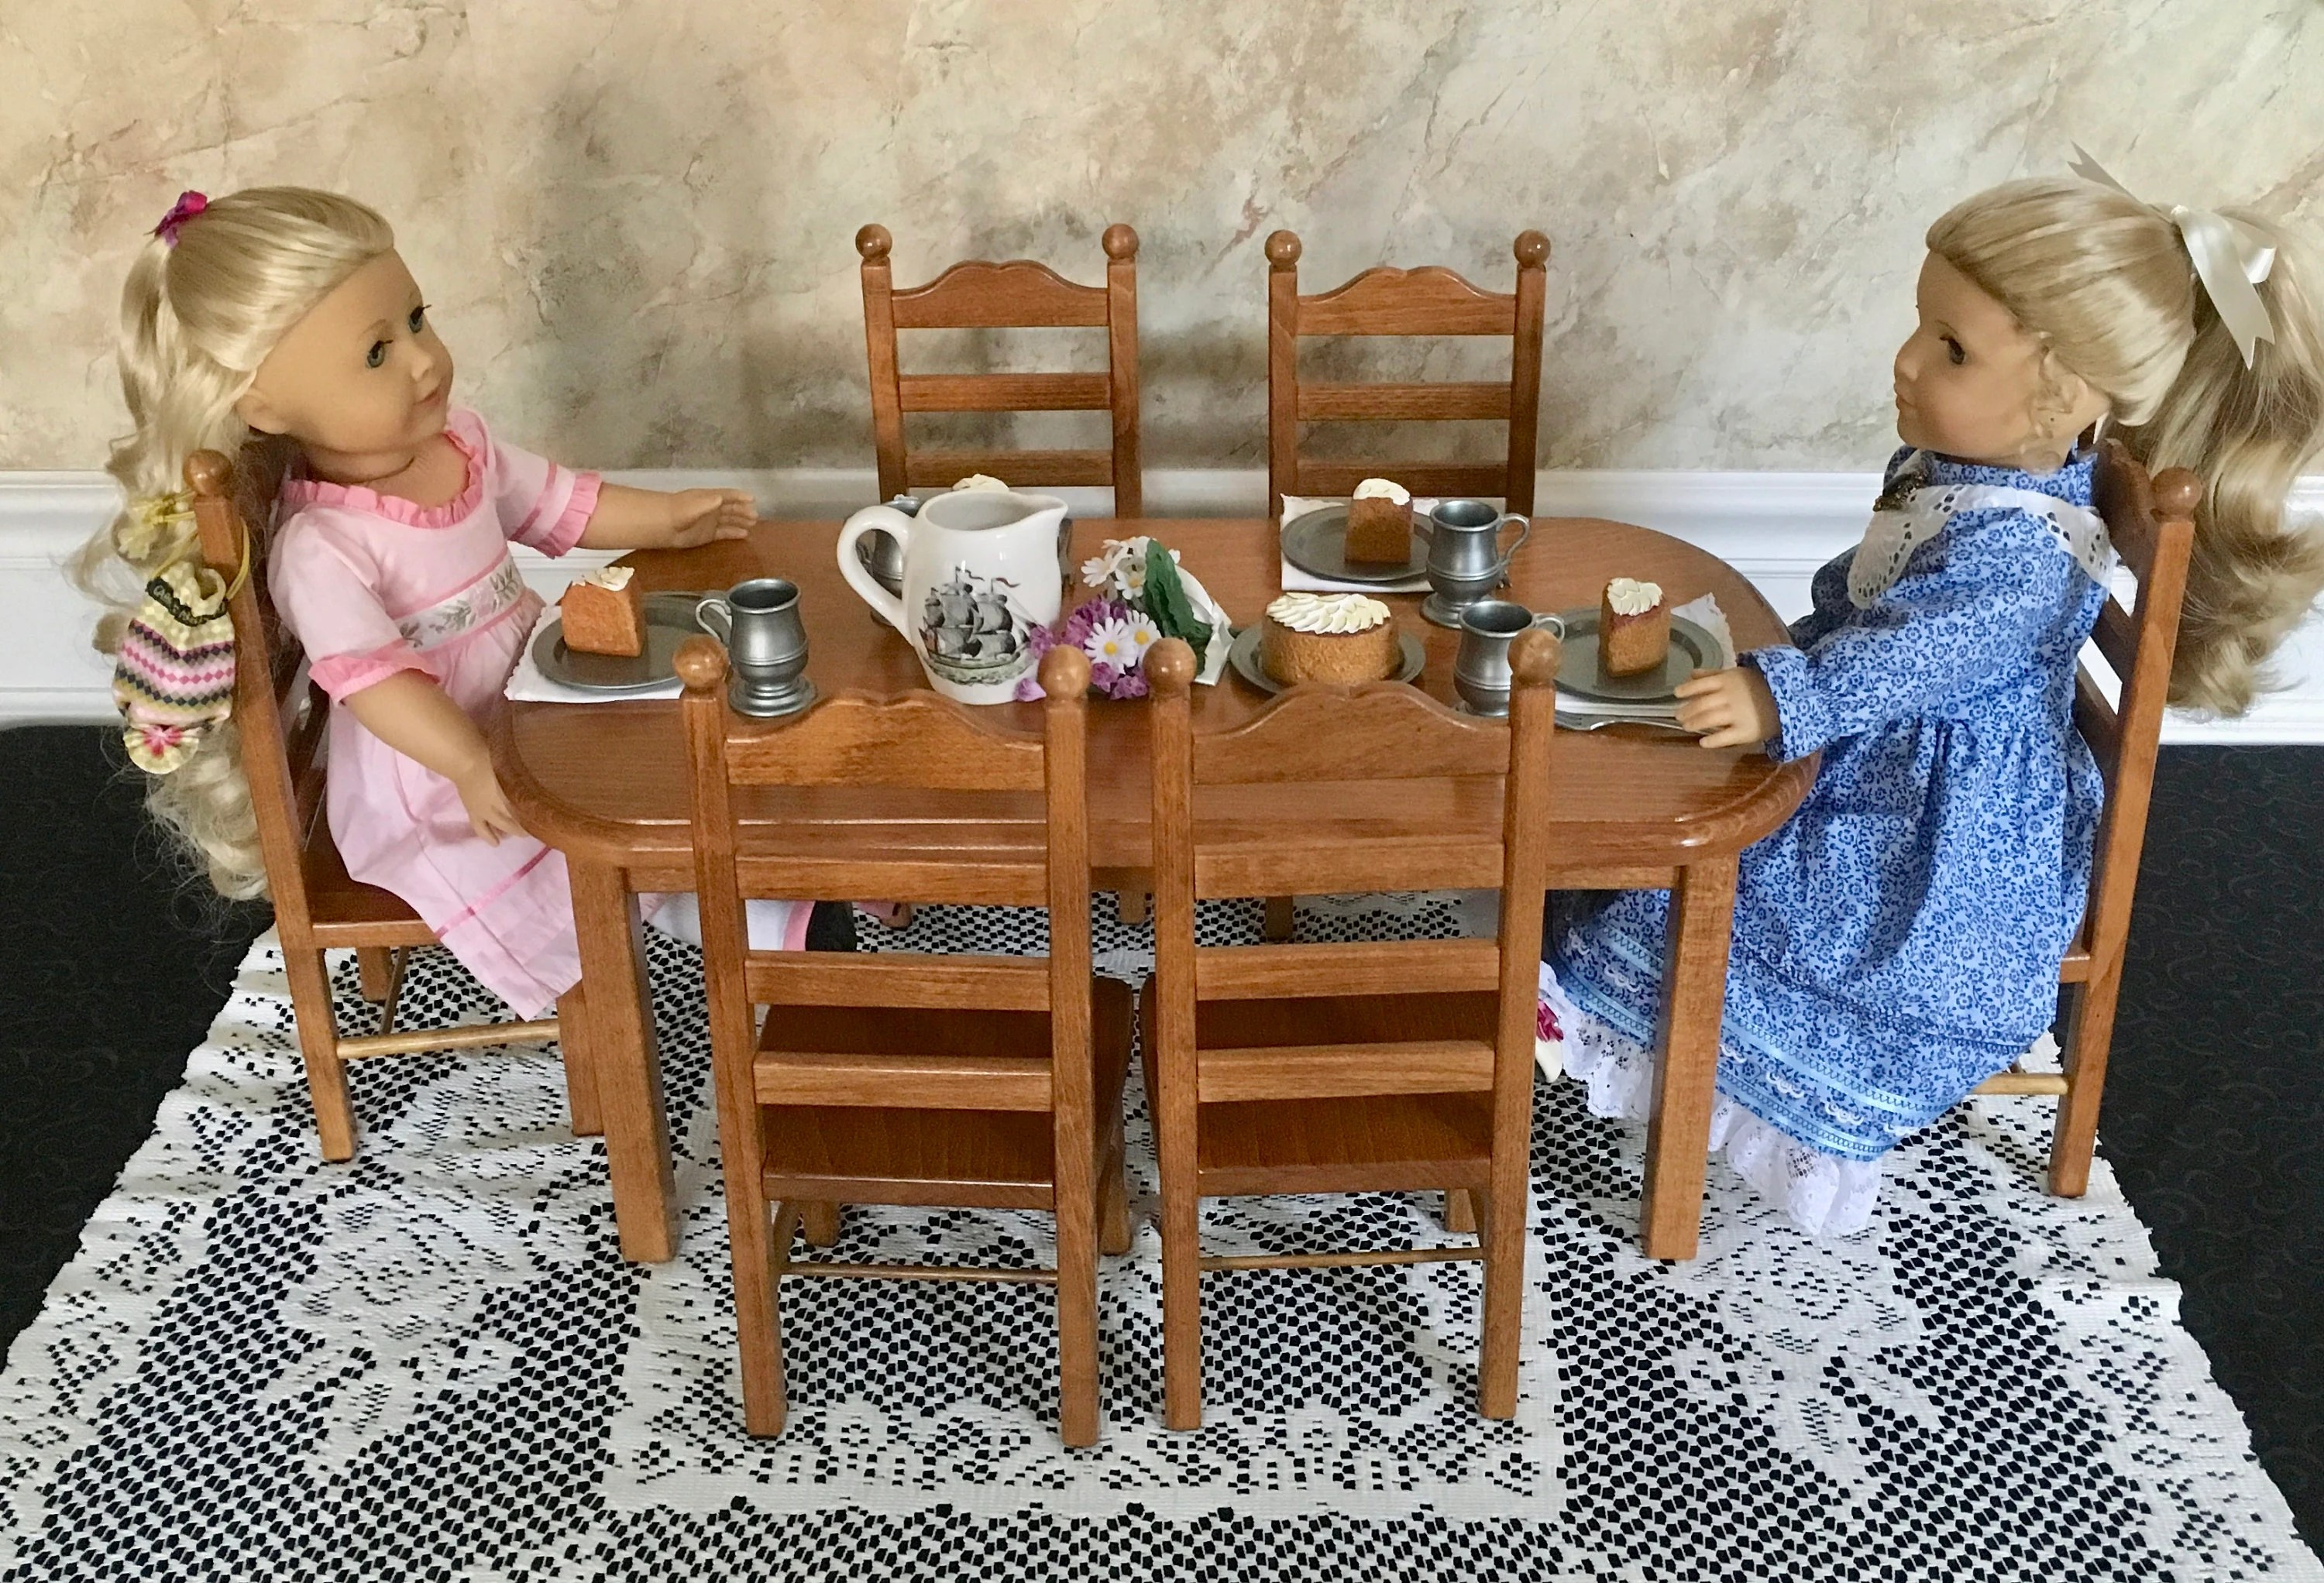 american girl doll chairs rocking chair or glider for nursing furniture stained table six 18 etsy image 0